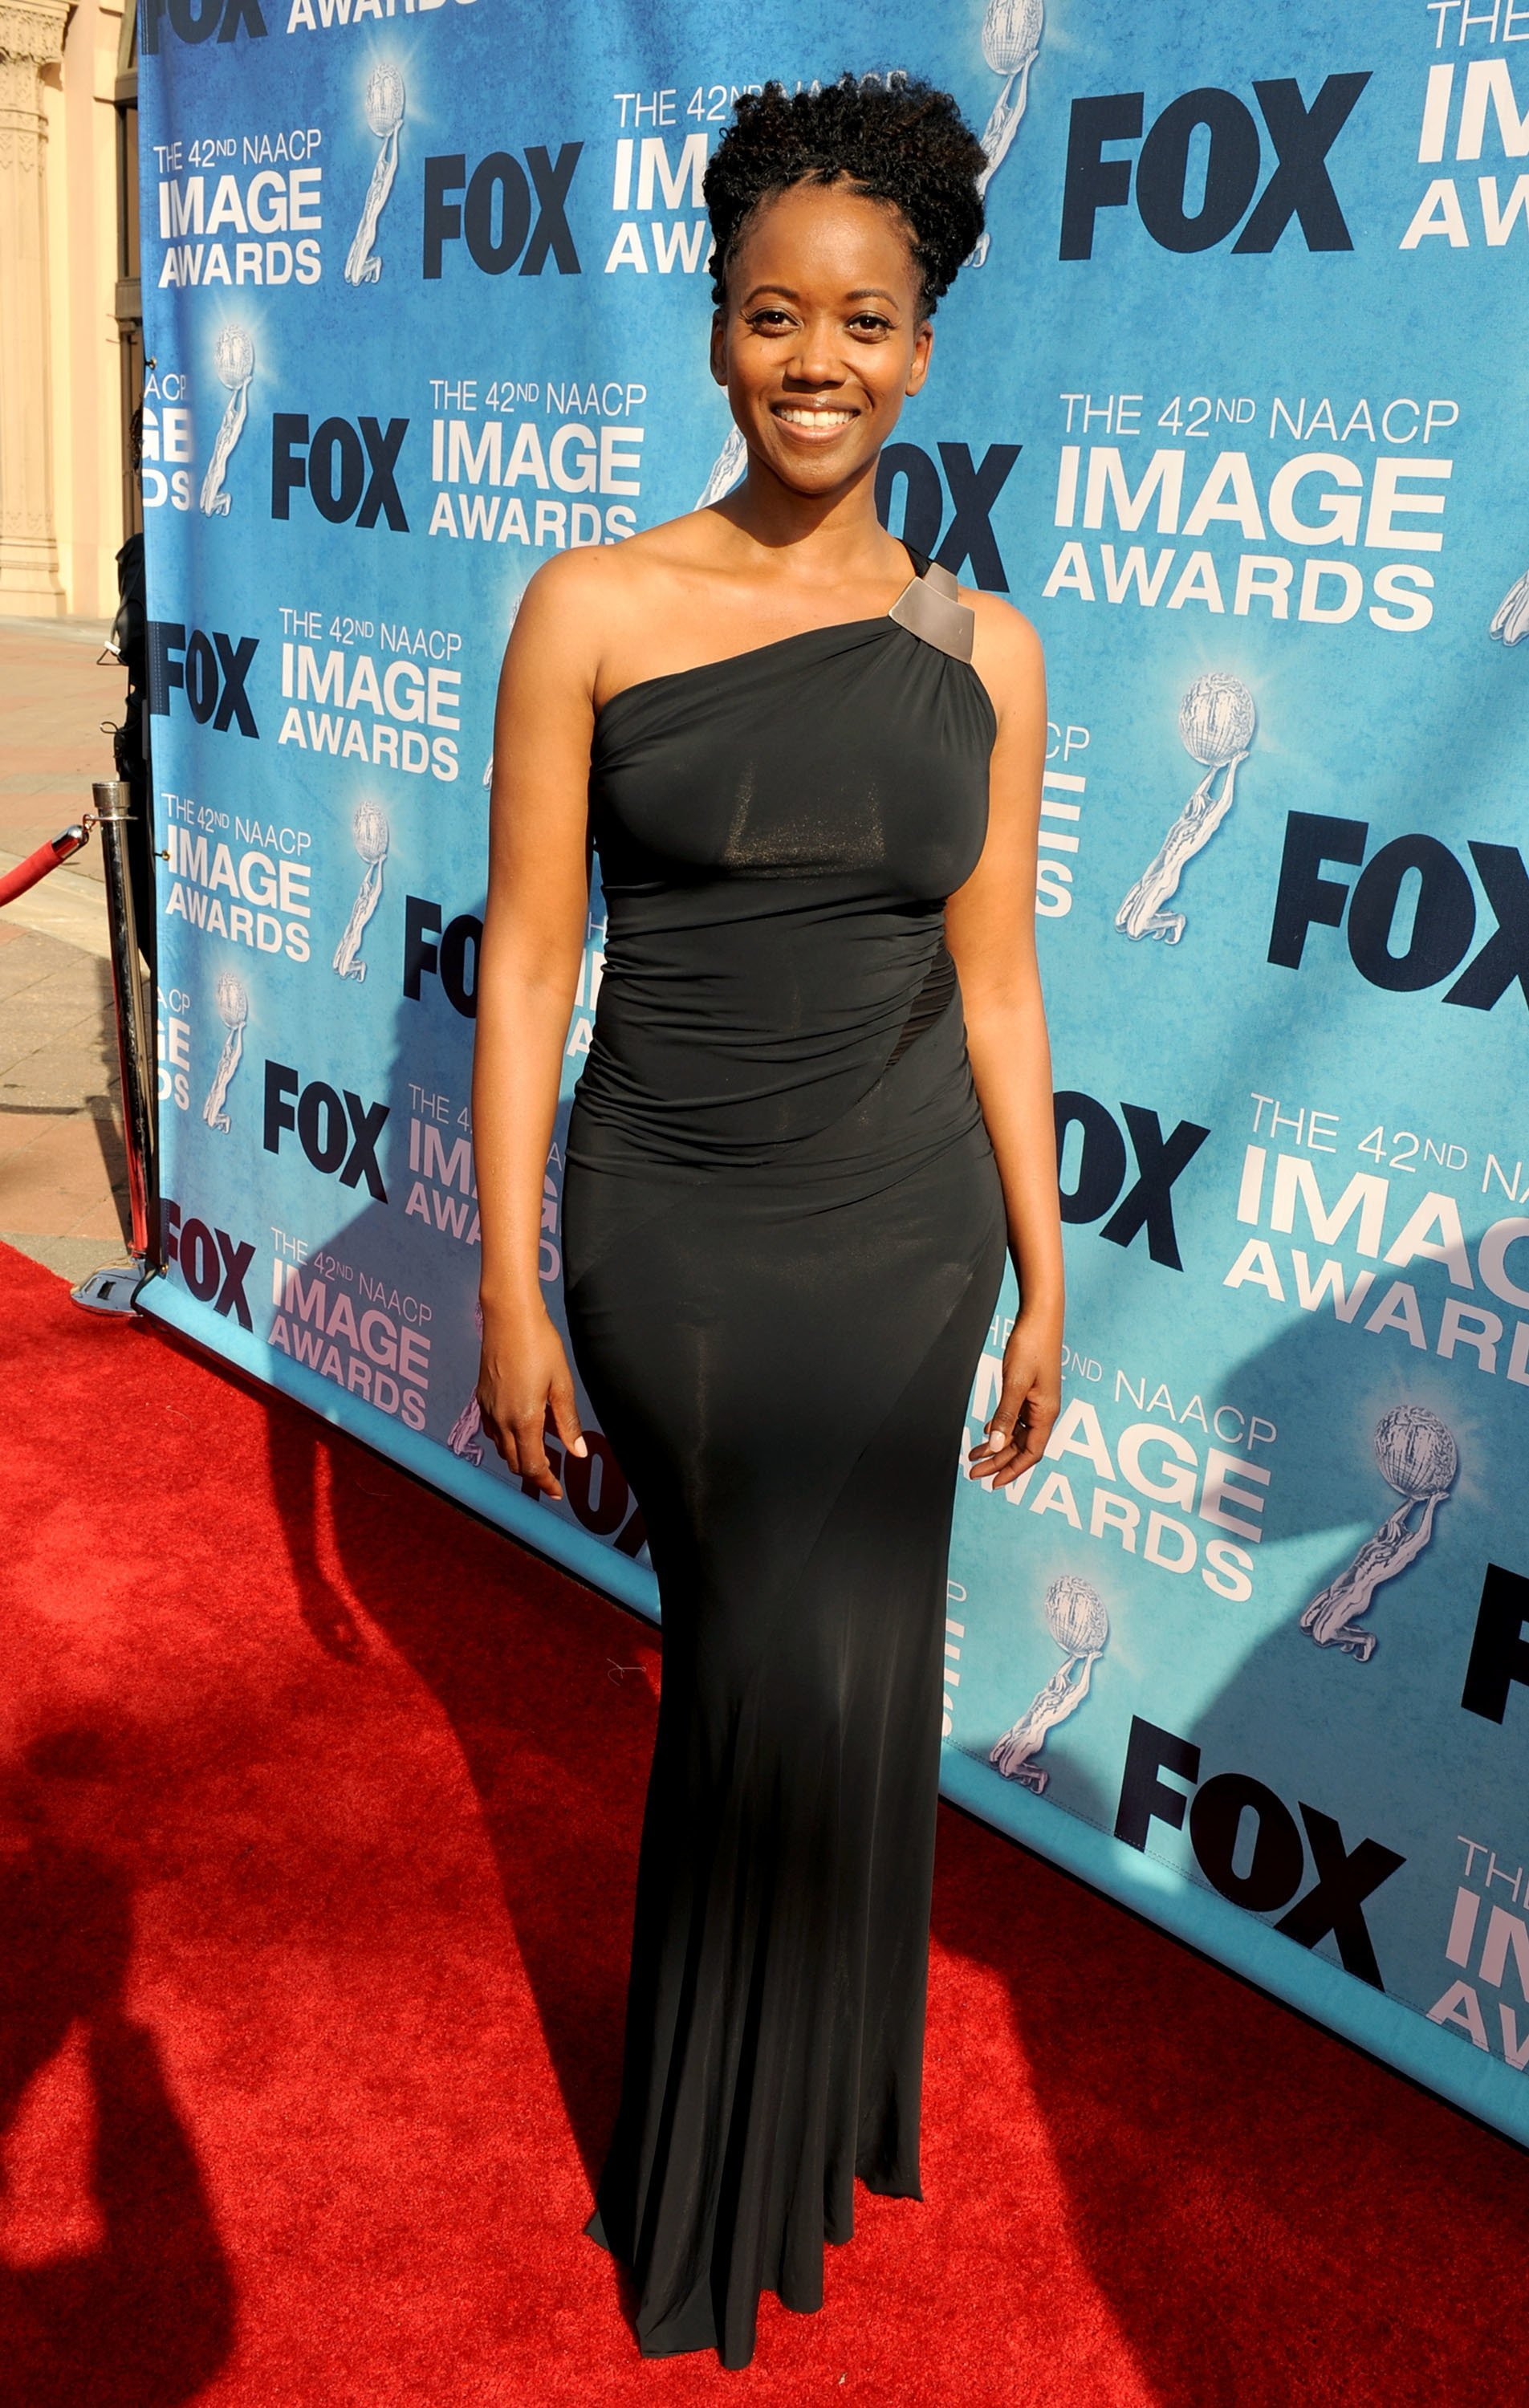 Erika Alexander attends the 42nd NAACP Image Awards | Source: Getty Images/GlobalImagesUkraine